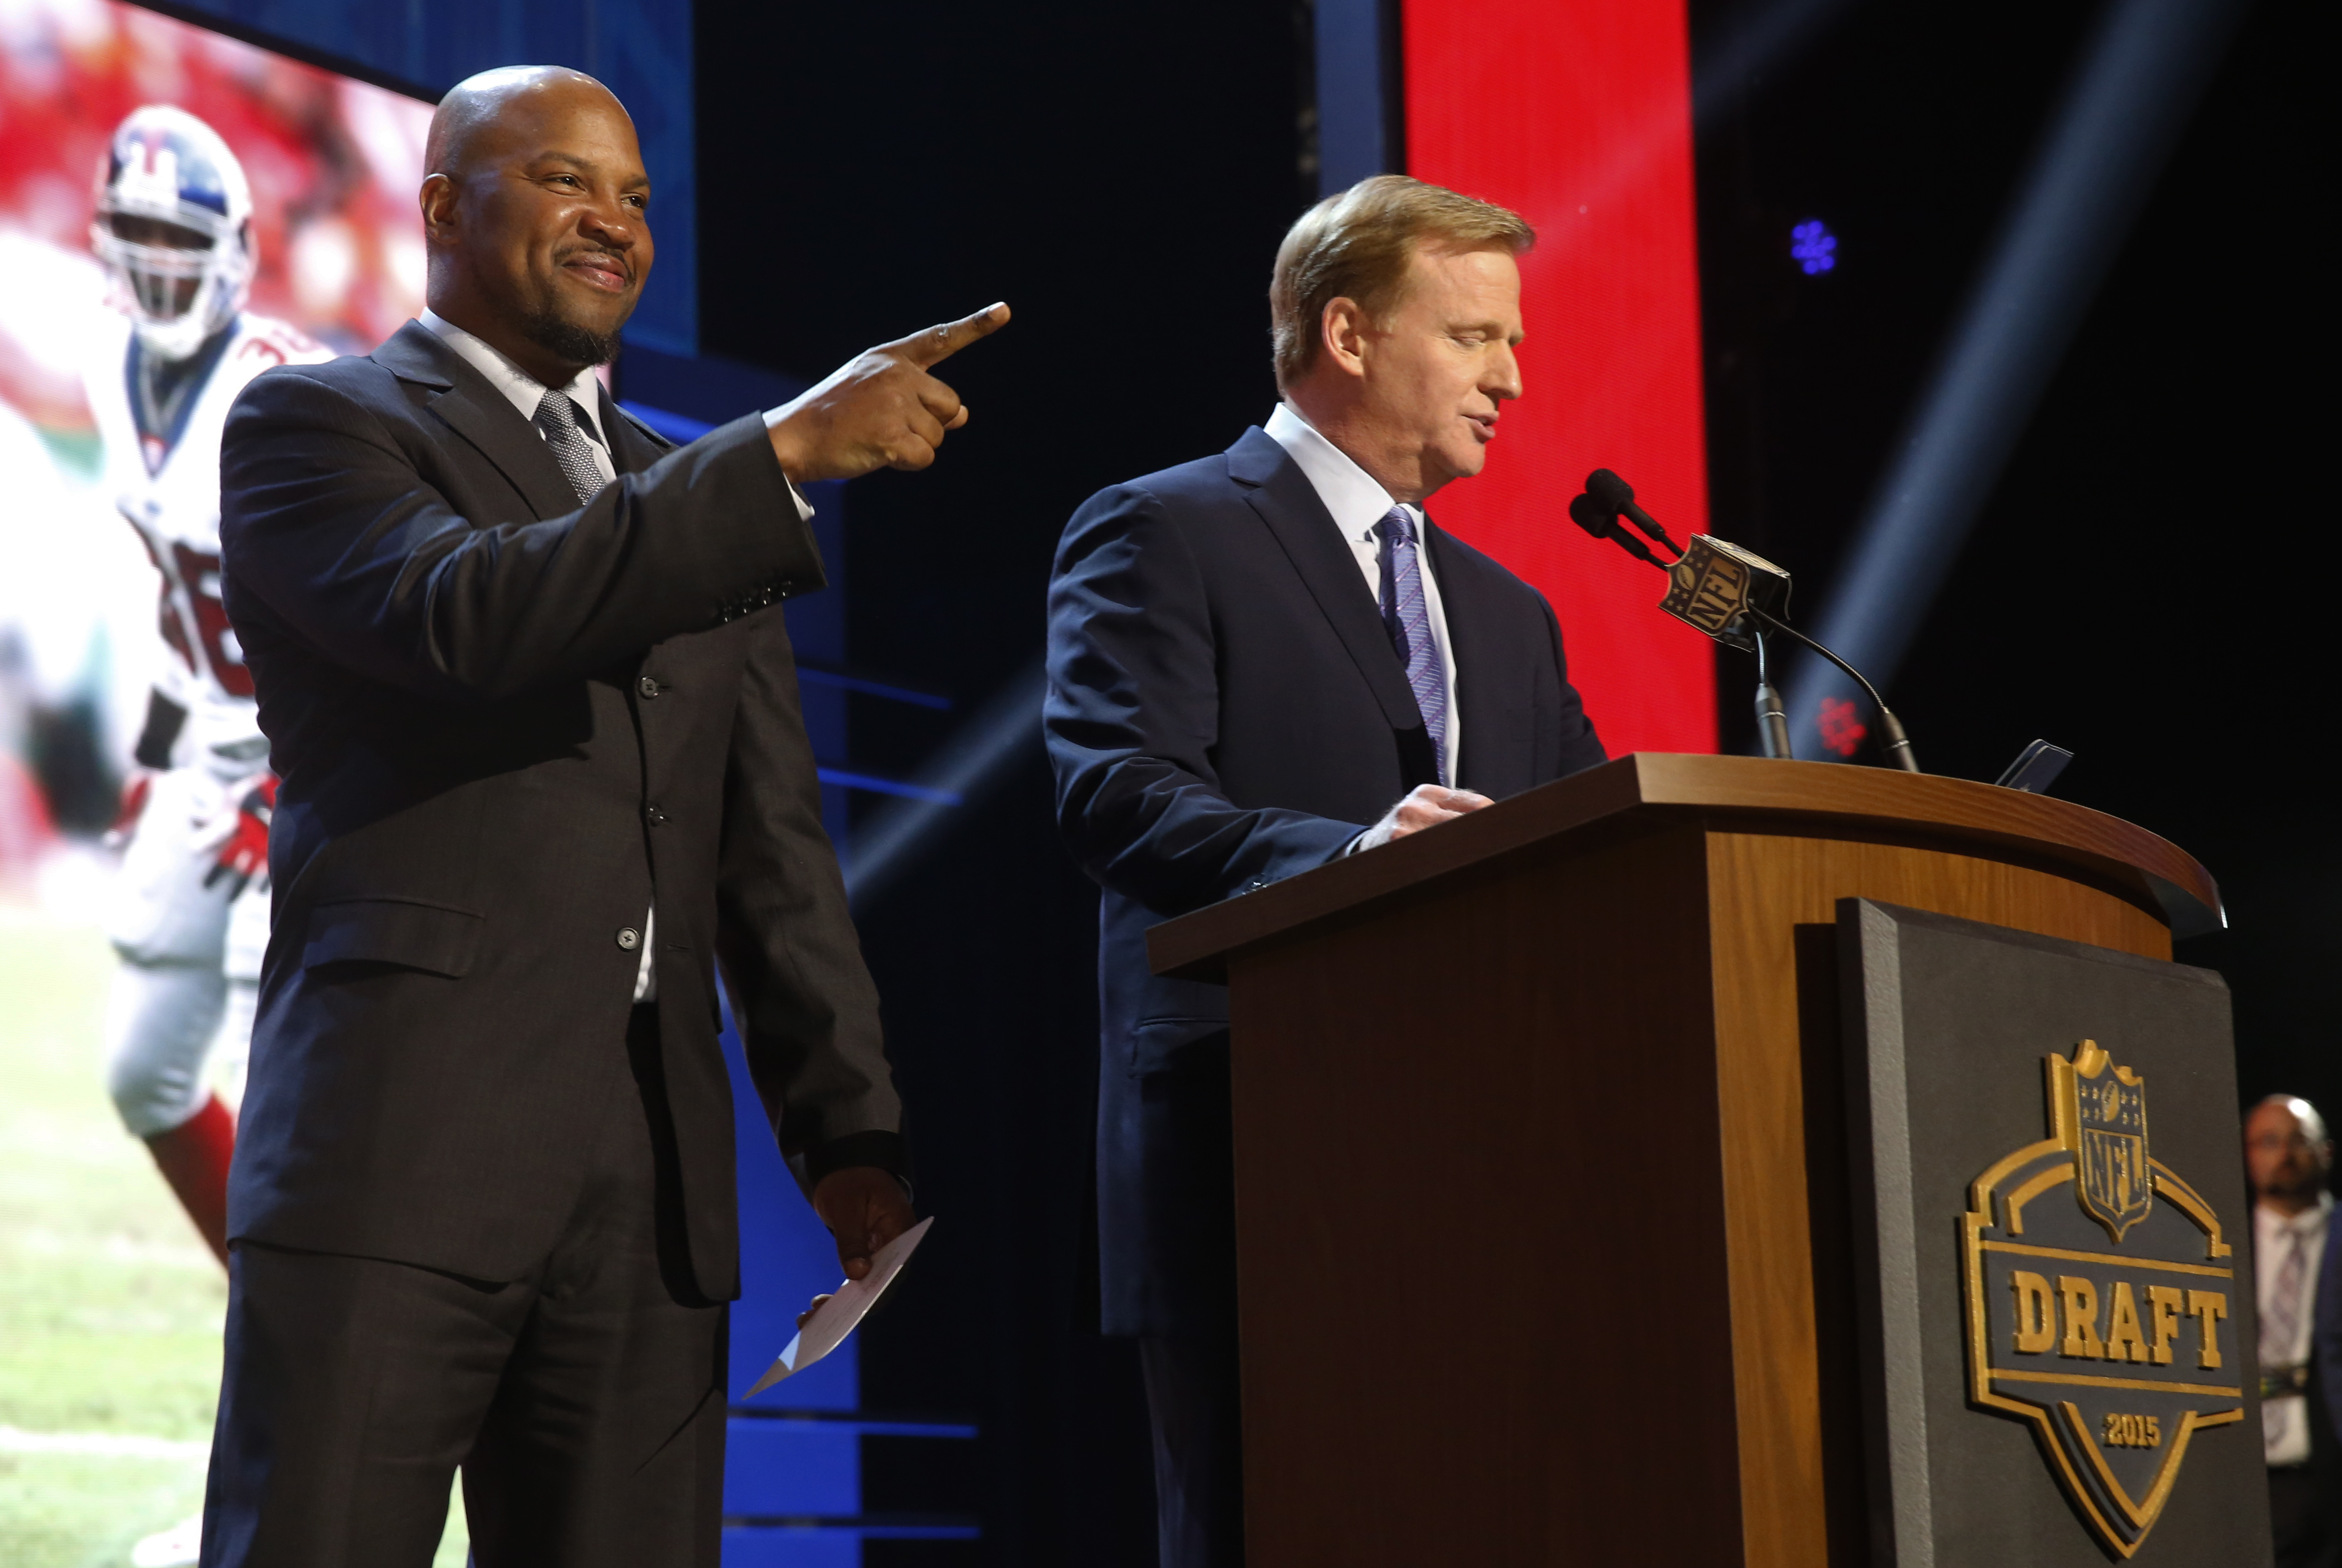 NFL commissioner Roger Goodell speaks before Shaun Williams, left, announces that the New York Giants selects Alabama defensive back Landon Collins as the 33rd pick in the second round of the 2015 NFL Football Draft,  Friday, May 1, 2015, in Chicago. (AP